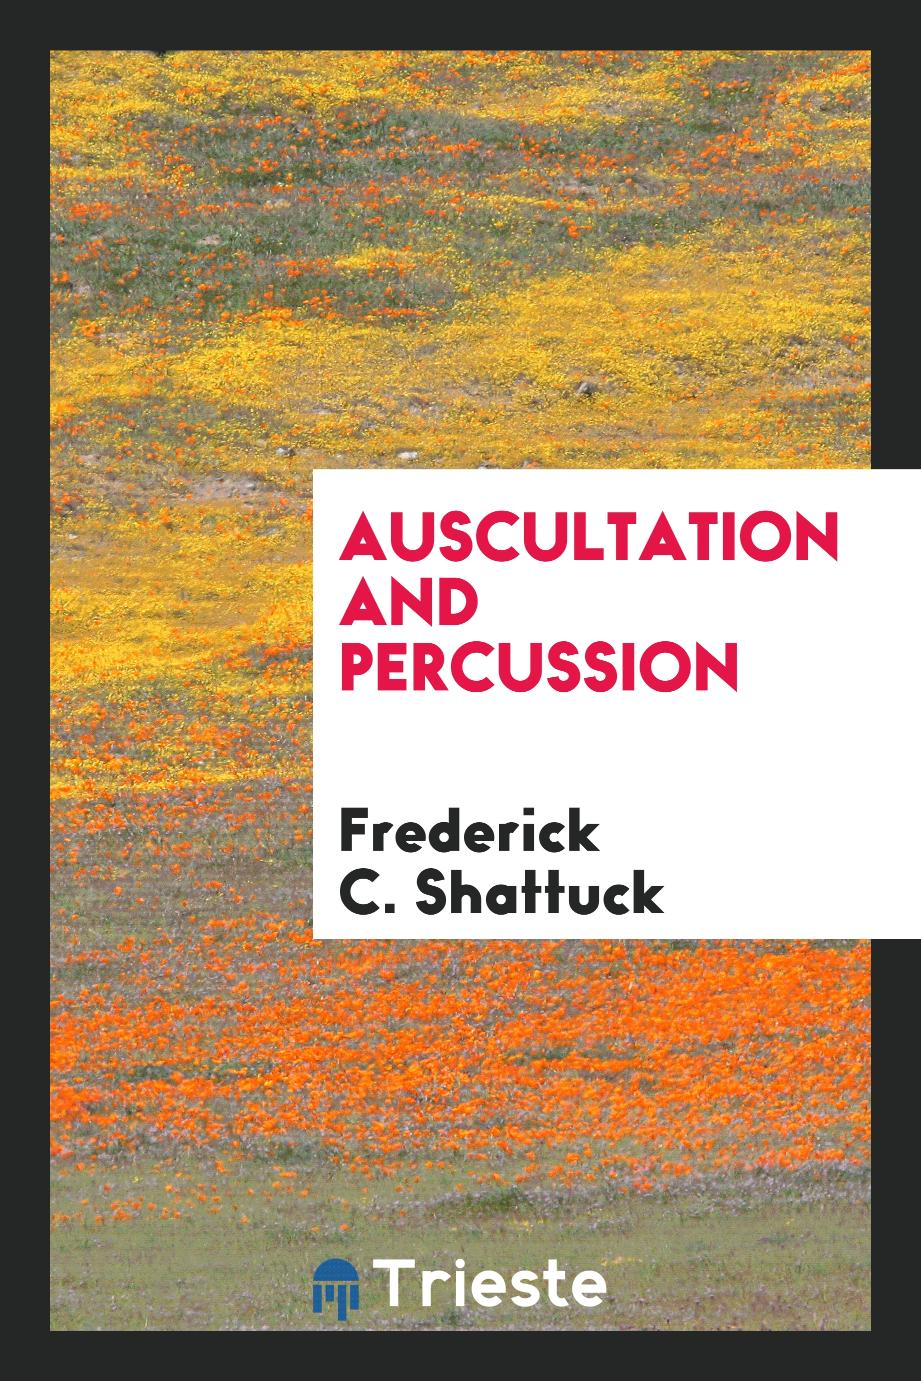 Auscultation and Percussion